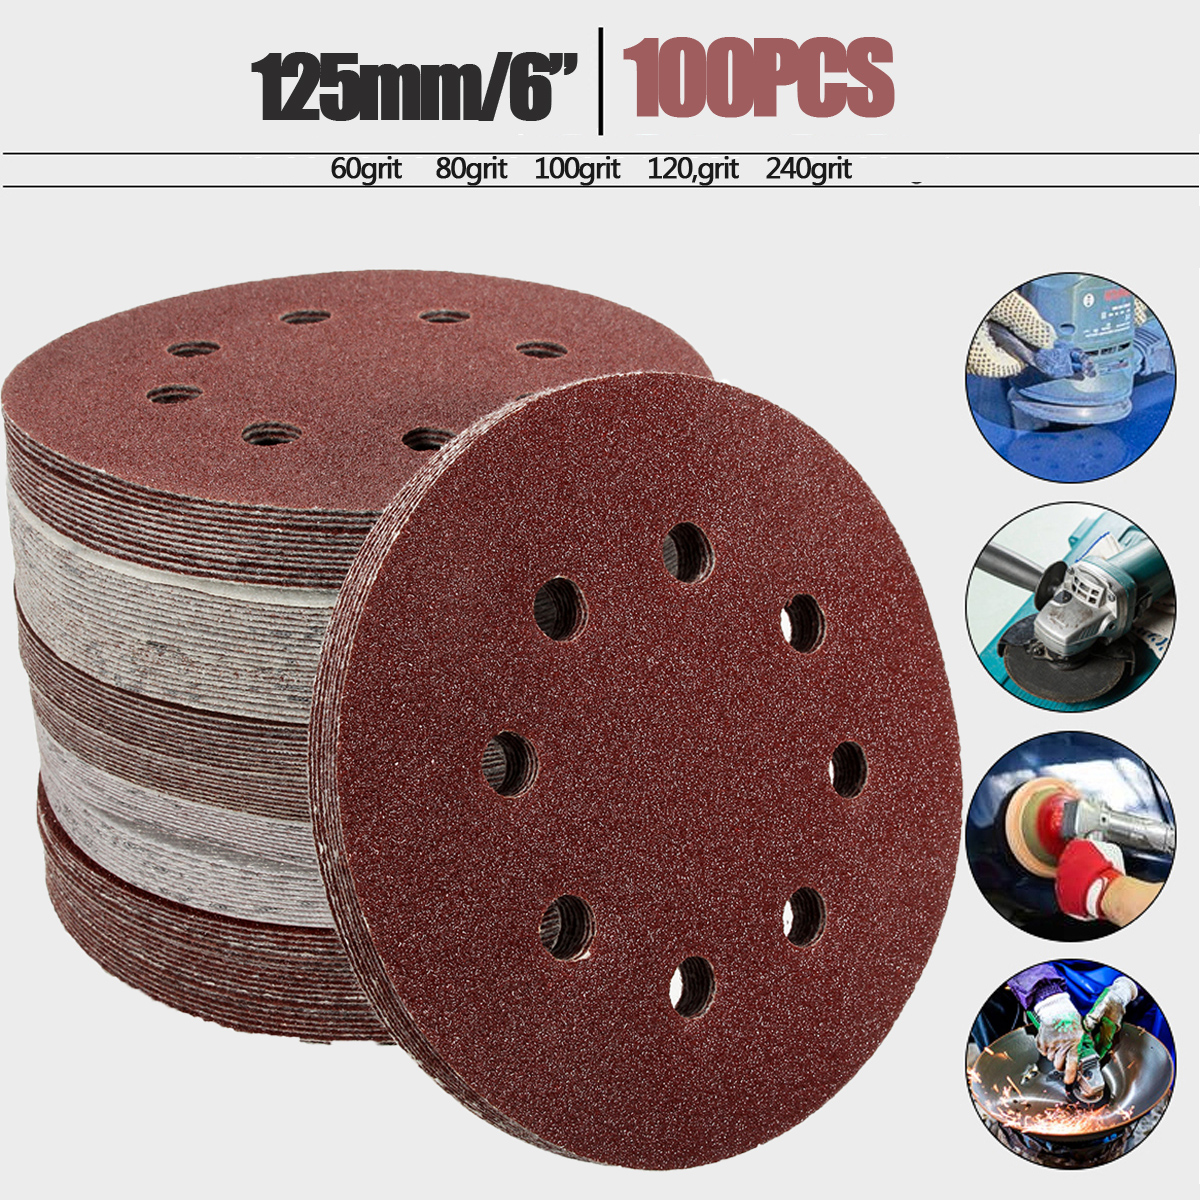 100pcs 125mm 60 80 100 120 240 Grit Round Shape Sanding Discs Buffing Sheet Sandpaper 8 Hole Sander Polishing Pad Each Of 20